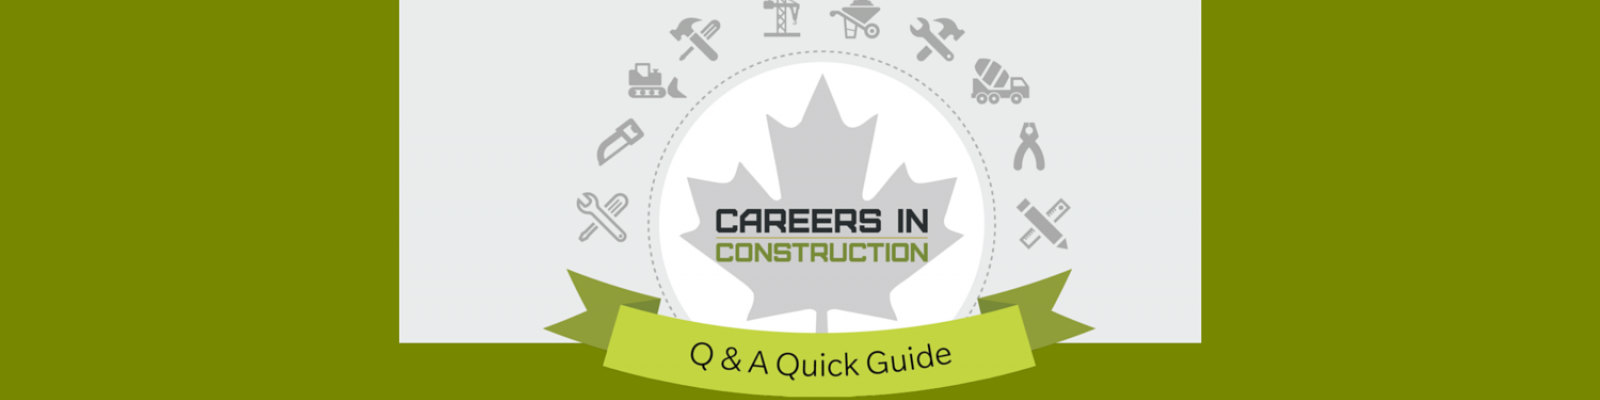 Banner for the Careers in Construction Q&A Quick Guide for Parents